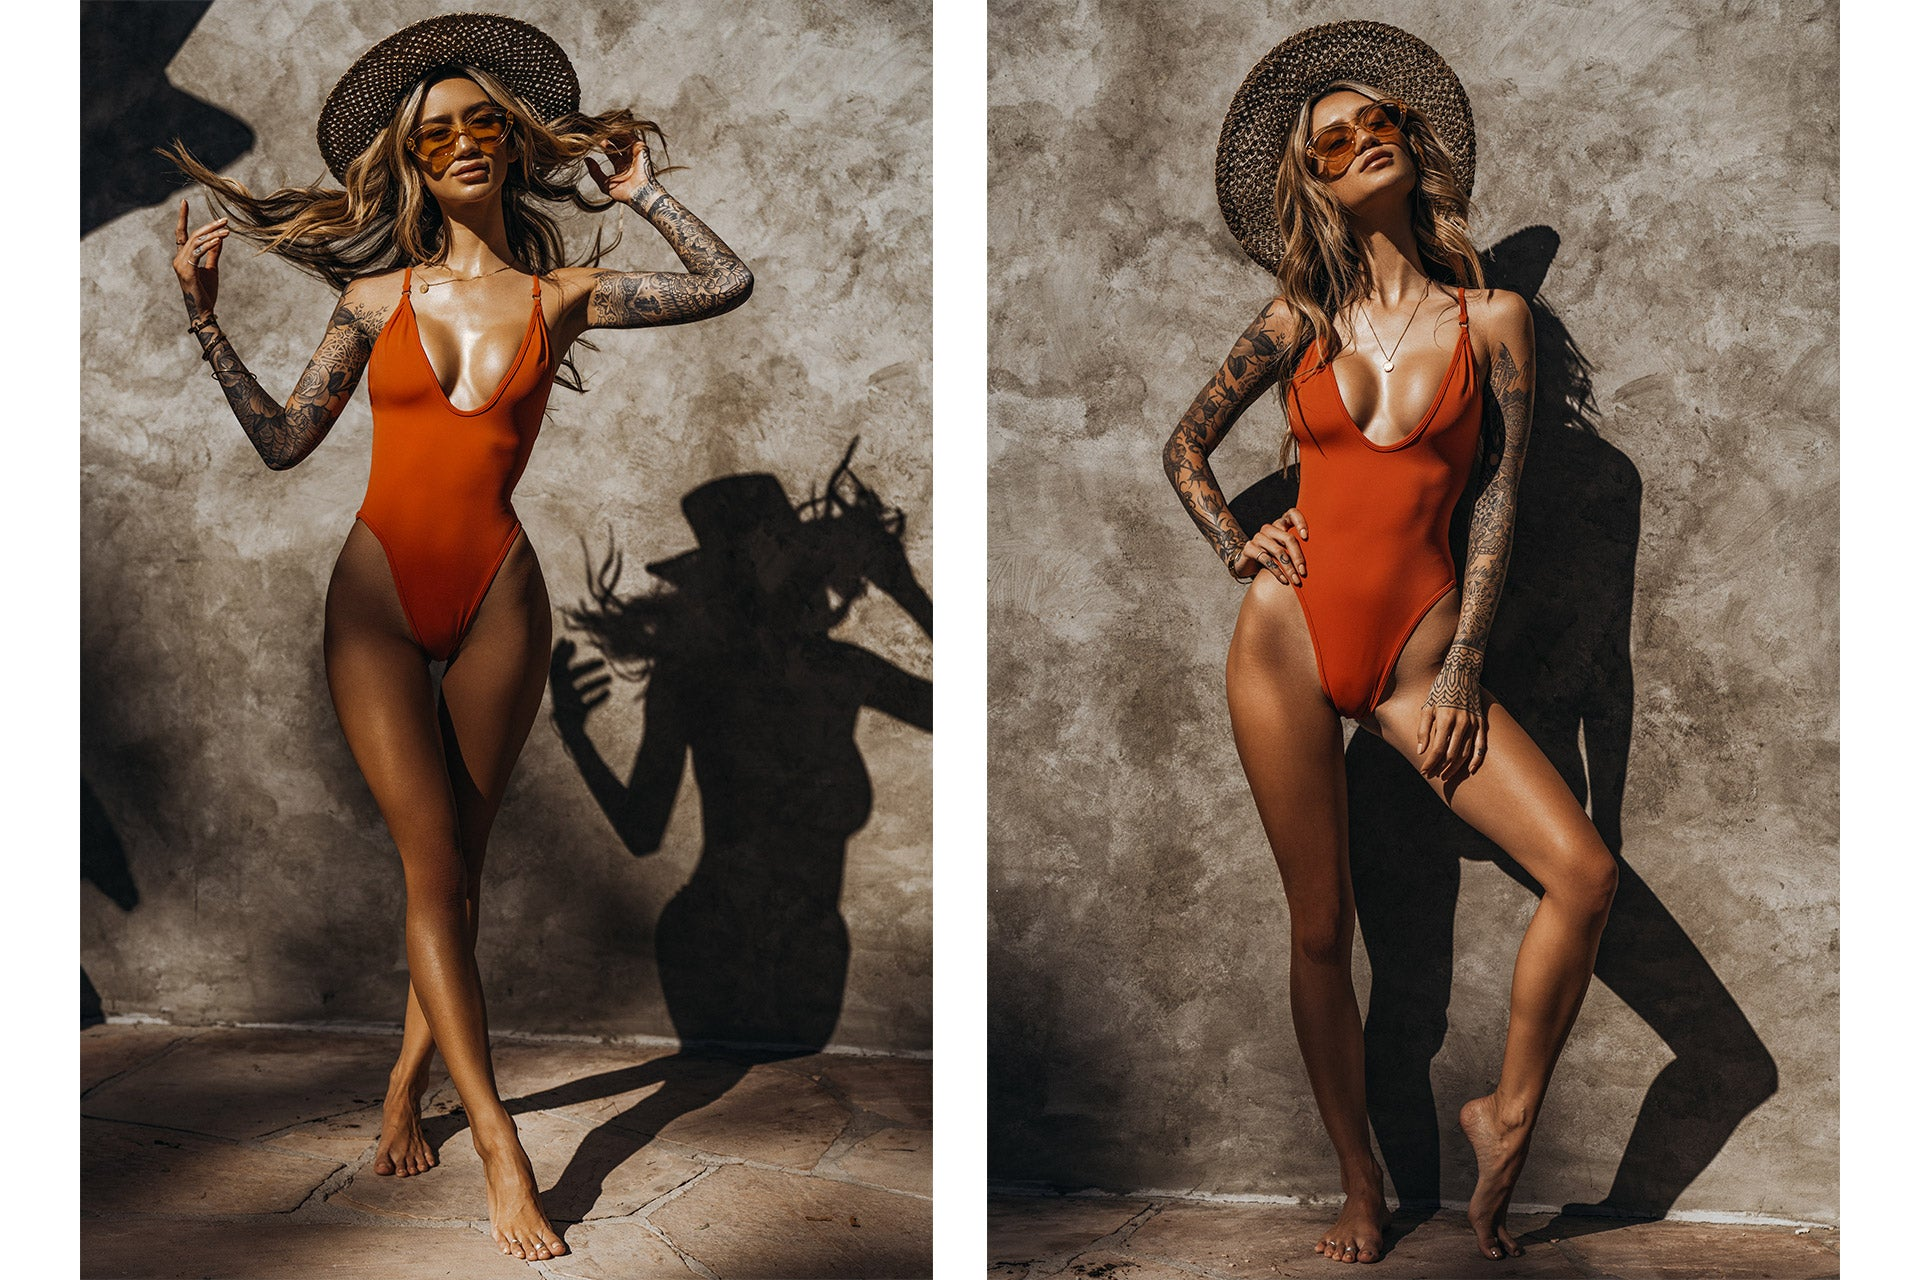 Jenah Yamamoto/Gypsyone wearing the So Chic Rum One Piece Swimsuit while wearing a straw hat